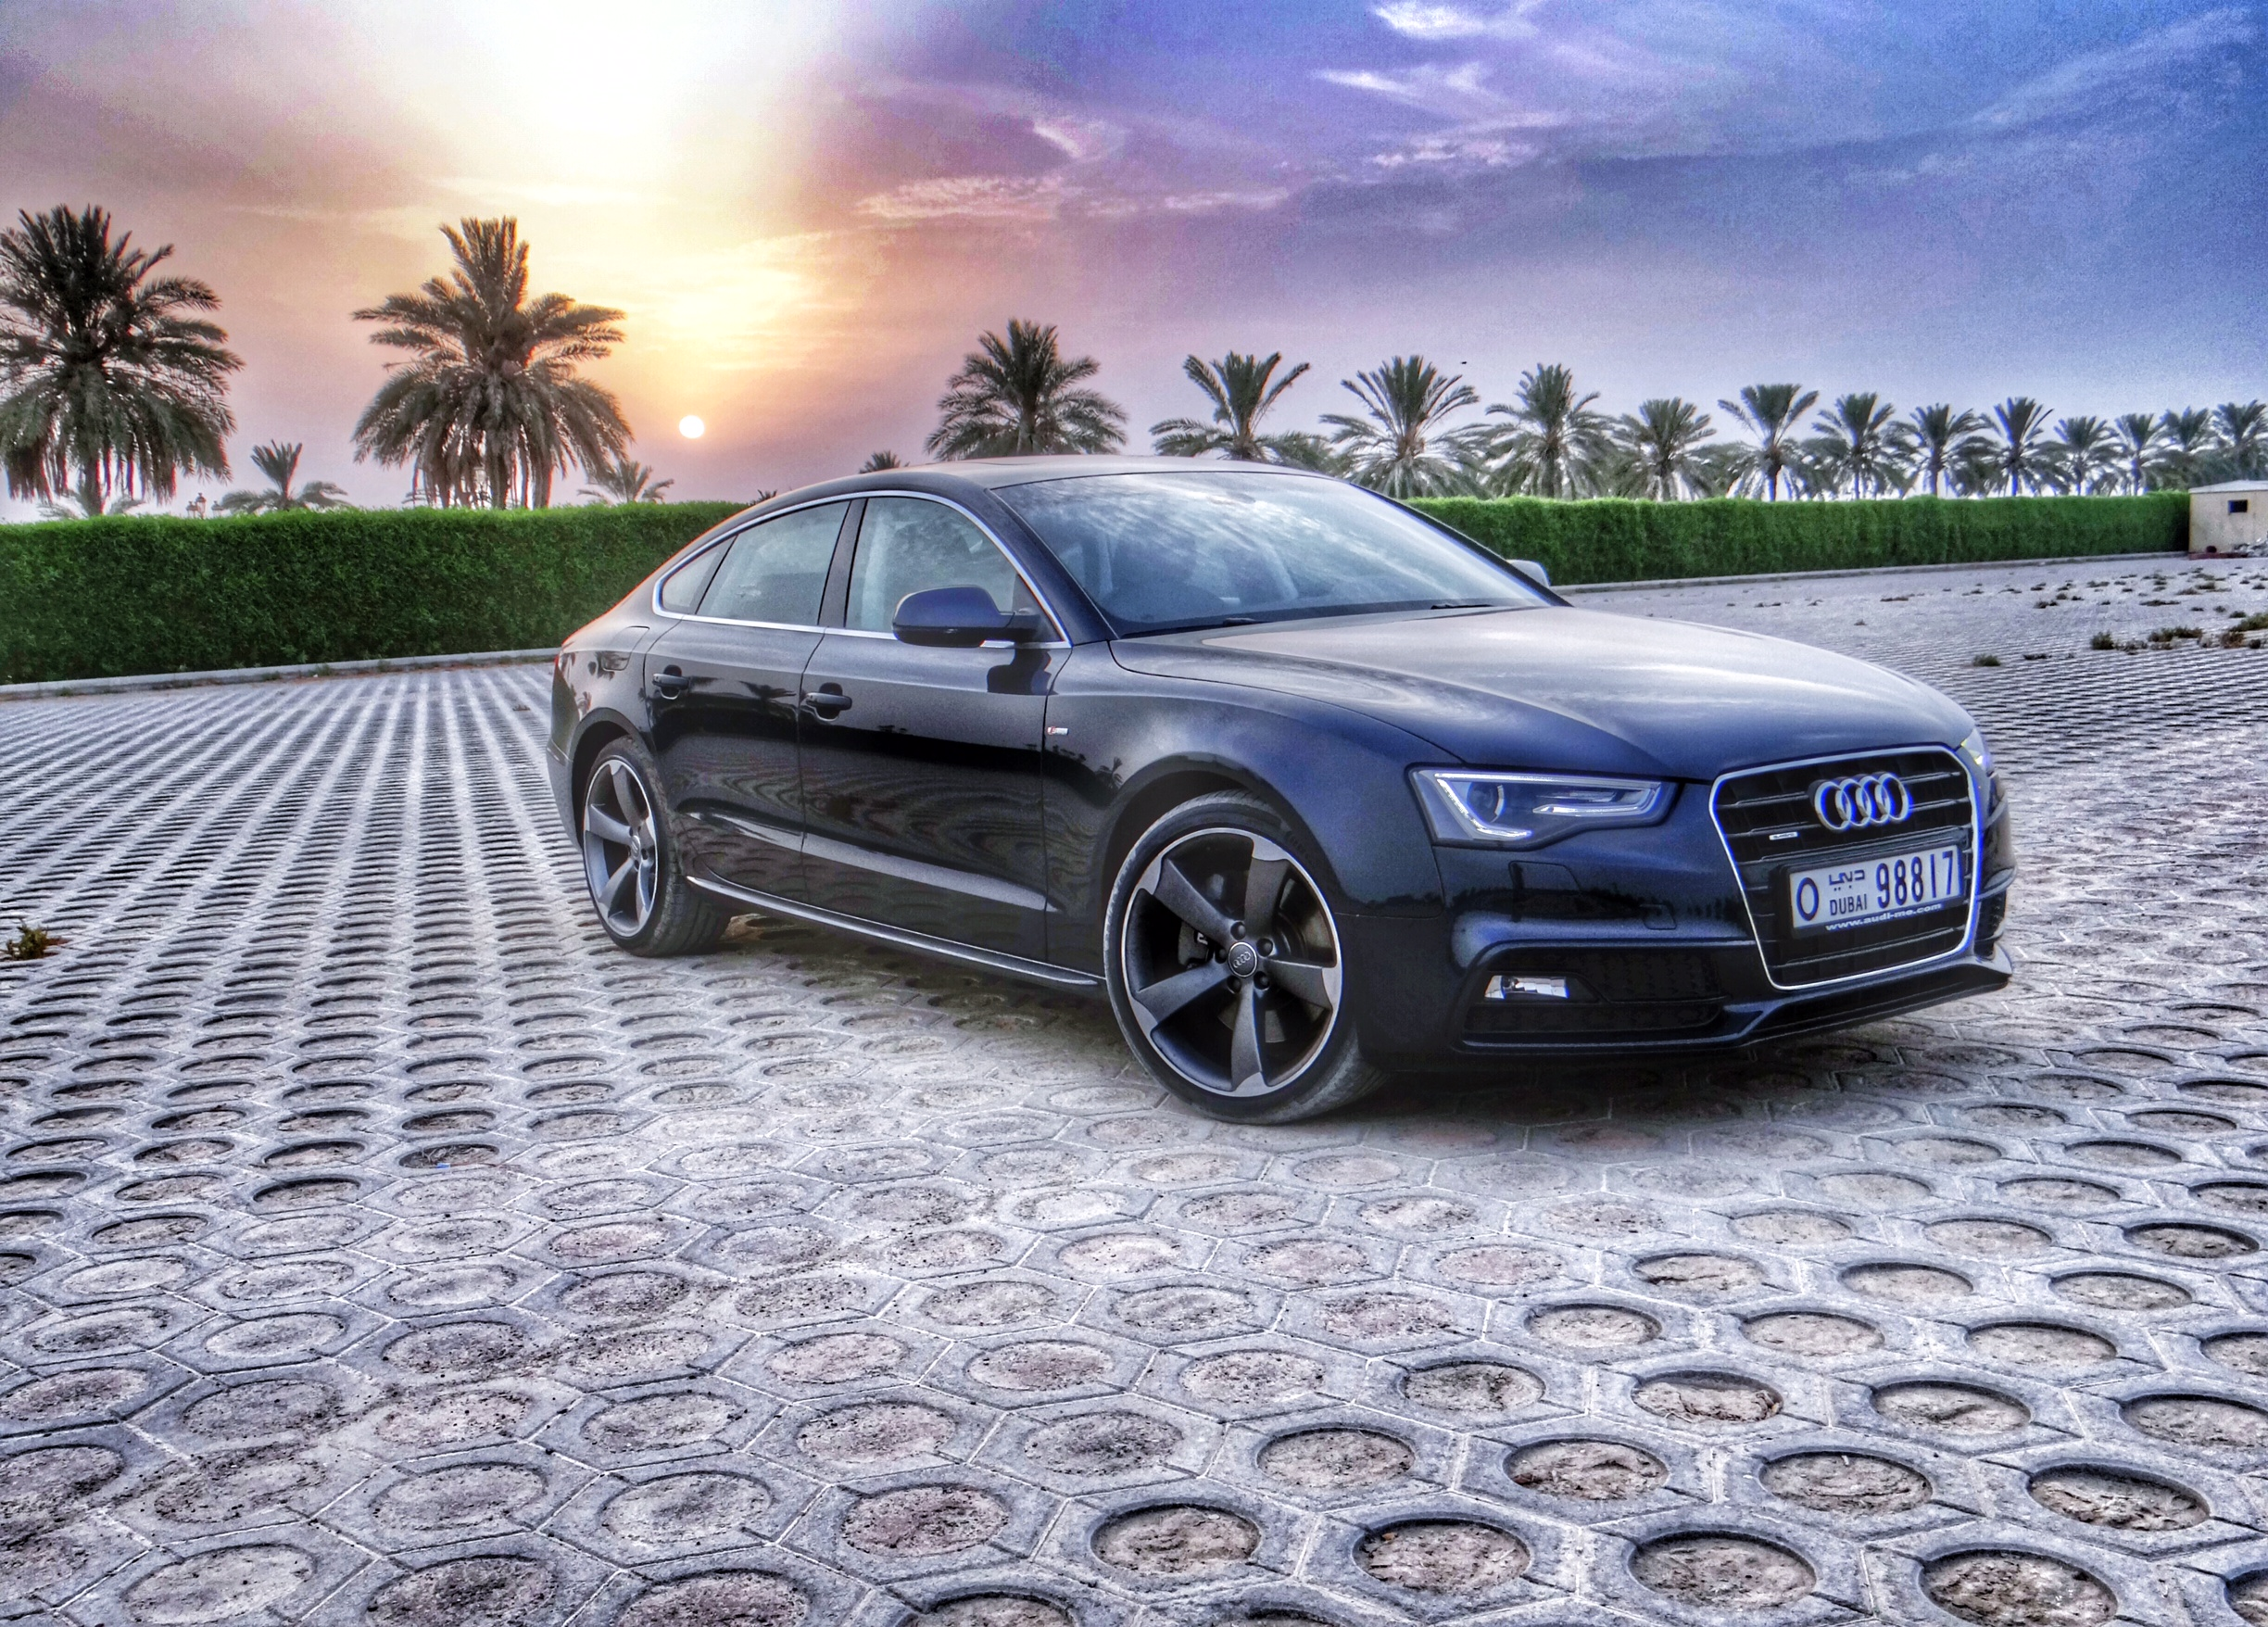 the 2014 audi a5 sportback 50 tfsi a life less ordinary rearview mirror. Black Bedroom Furniture Sets. Home Design Ideas